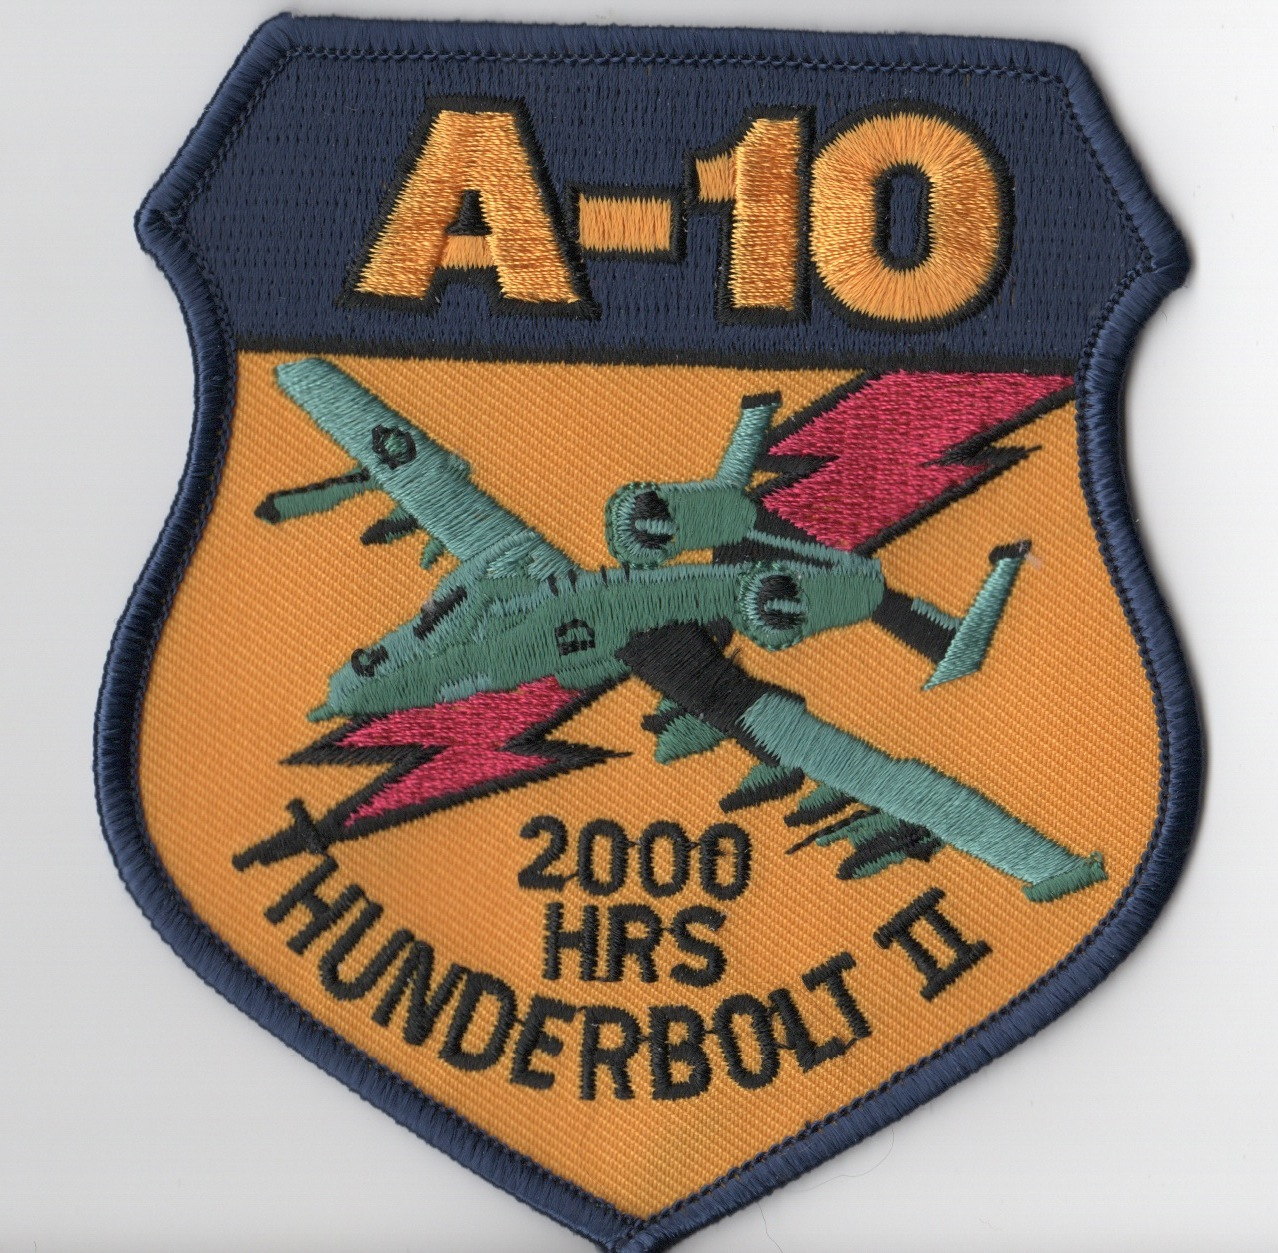 A-10 2000 Hours (Green A/C)